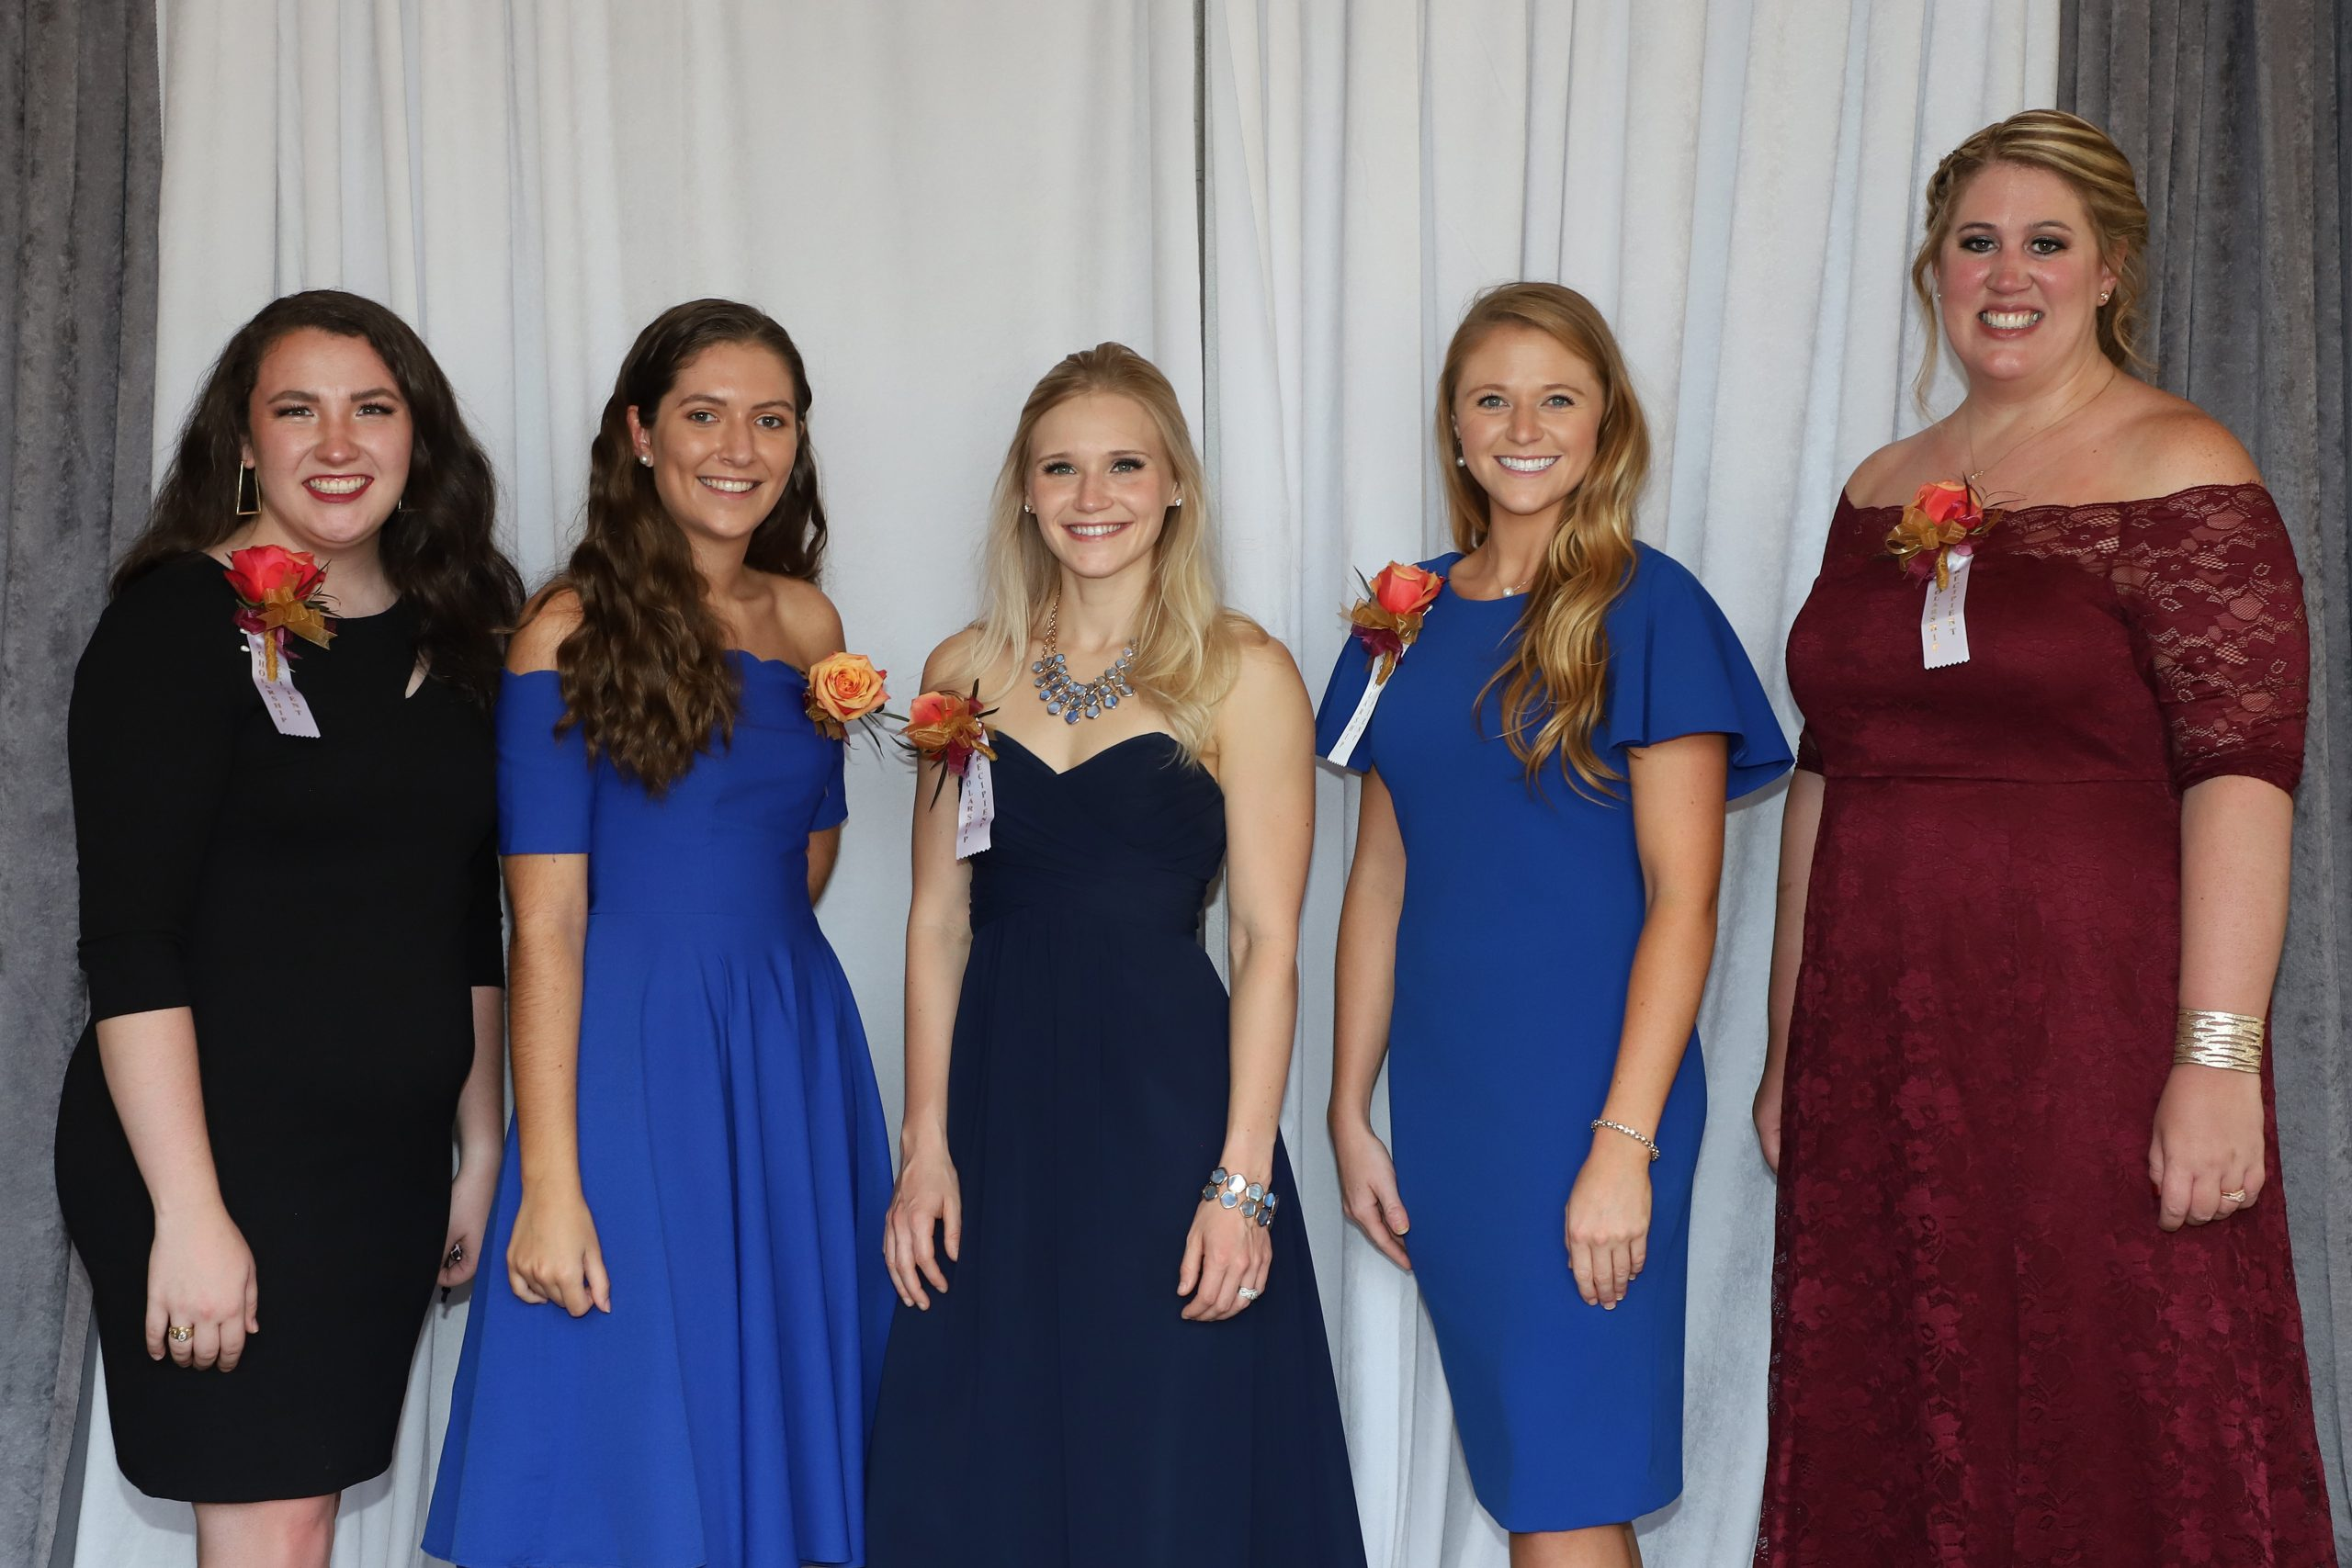 L to R, the 5 who attended: Michaela Yost, Sophia Ebel,  Nicole Karson, Emily Thompson,  Tara Freeman